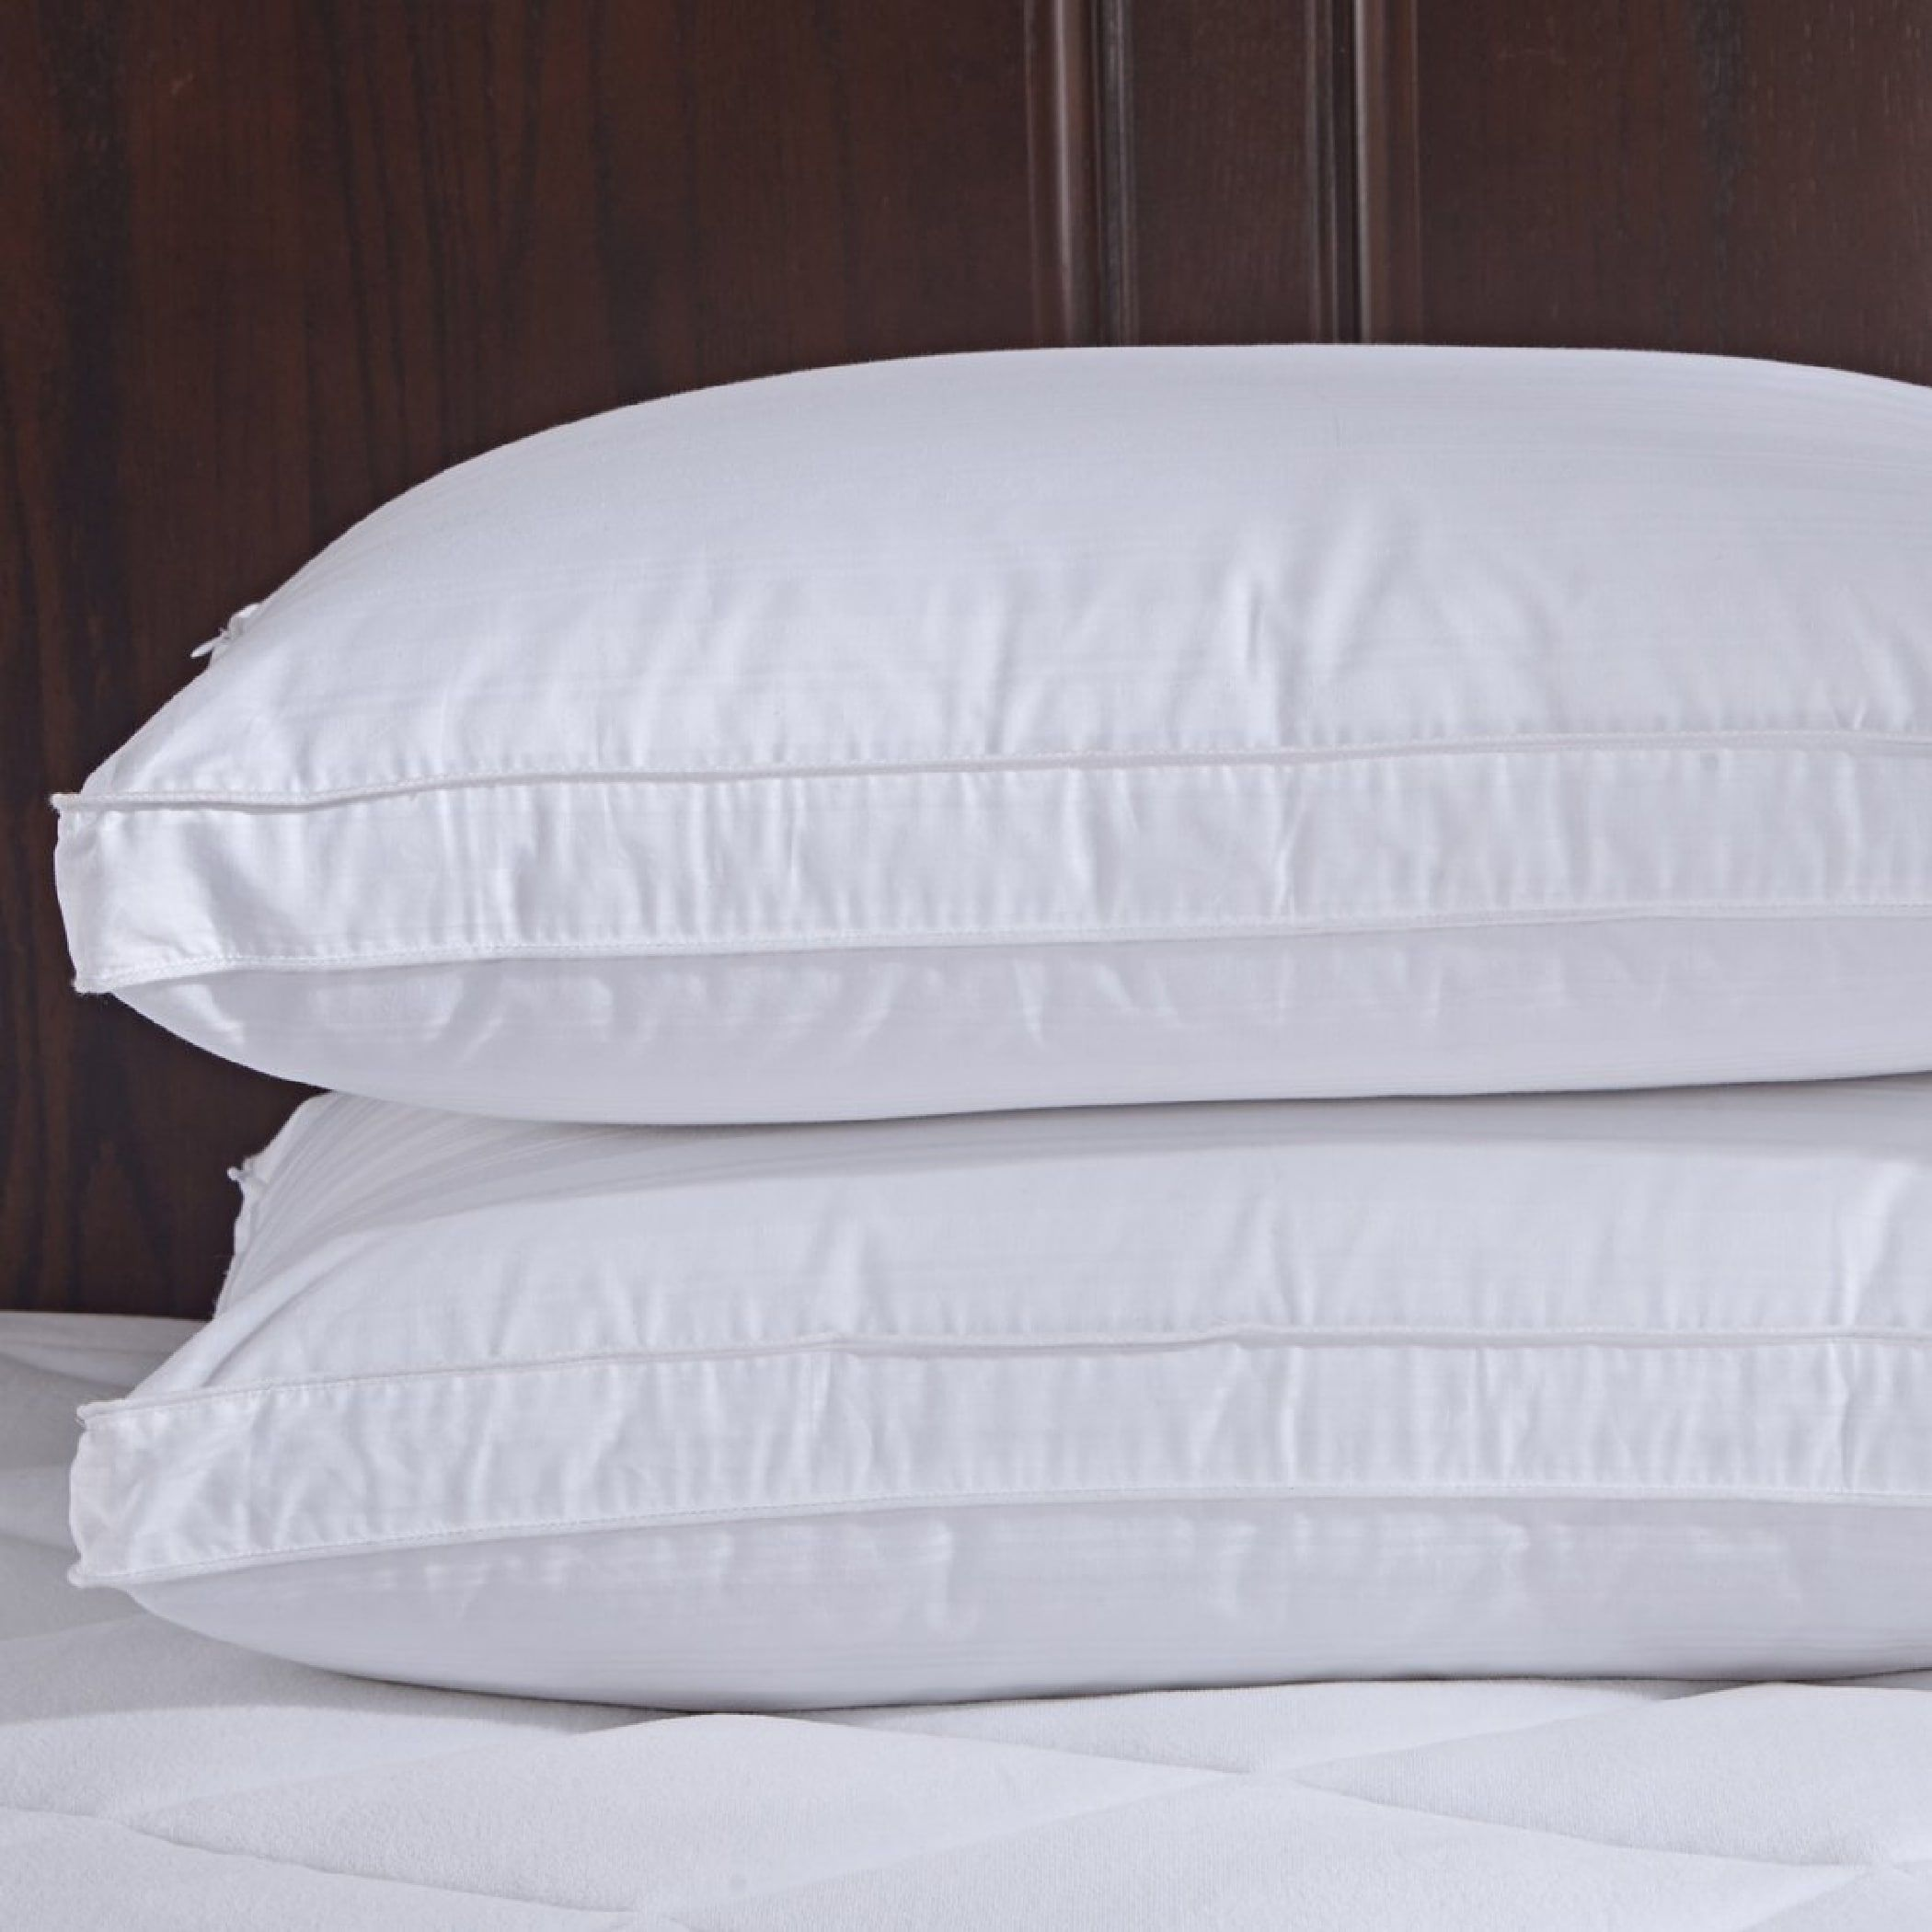 protector pillow products parachute protectors